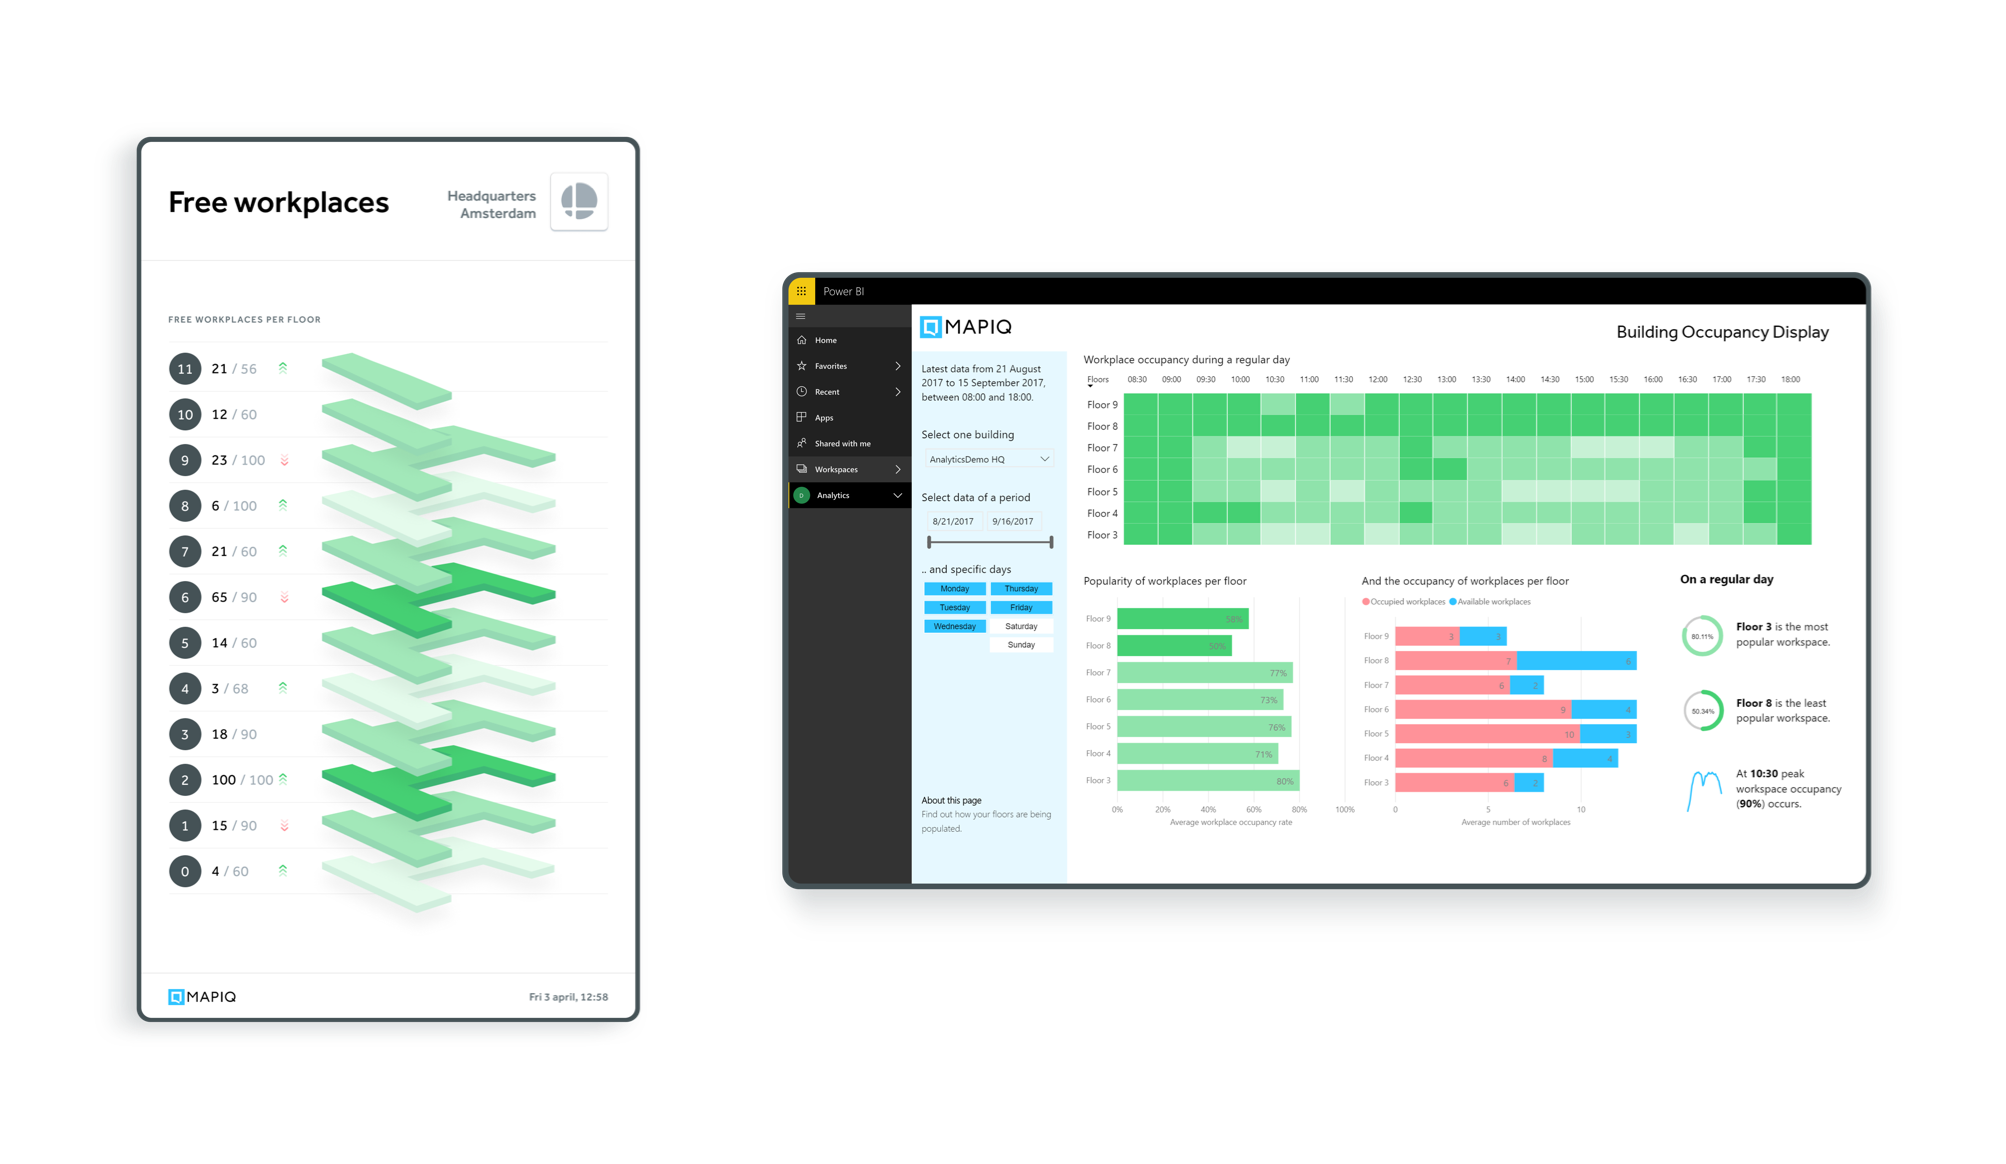 With office heatmaps you can see how employees are spread in your office throughout the day.